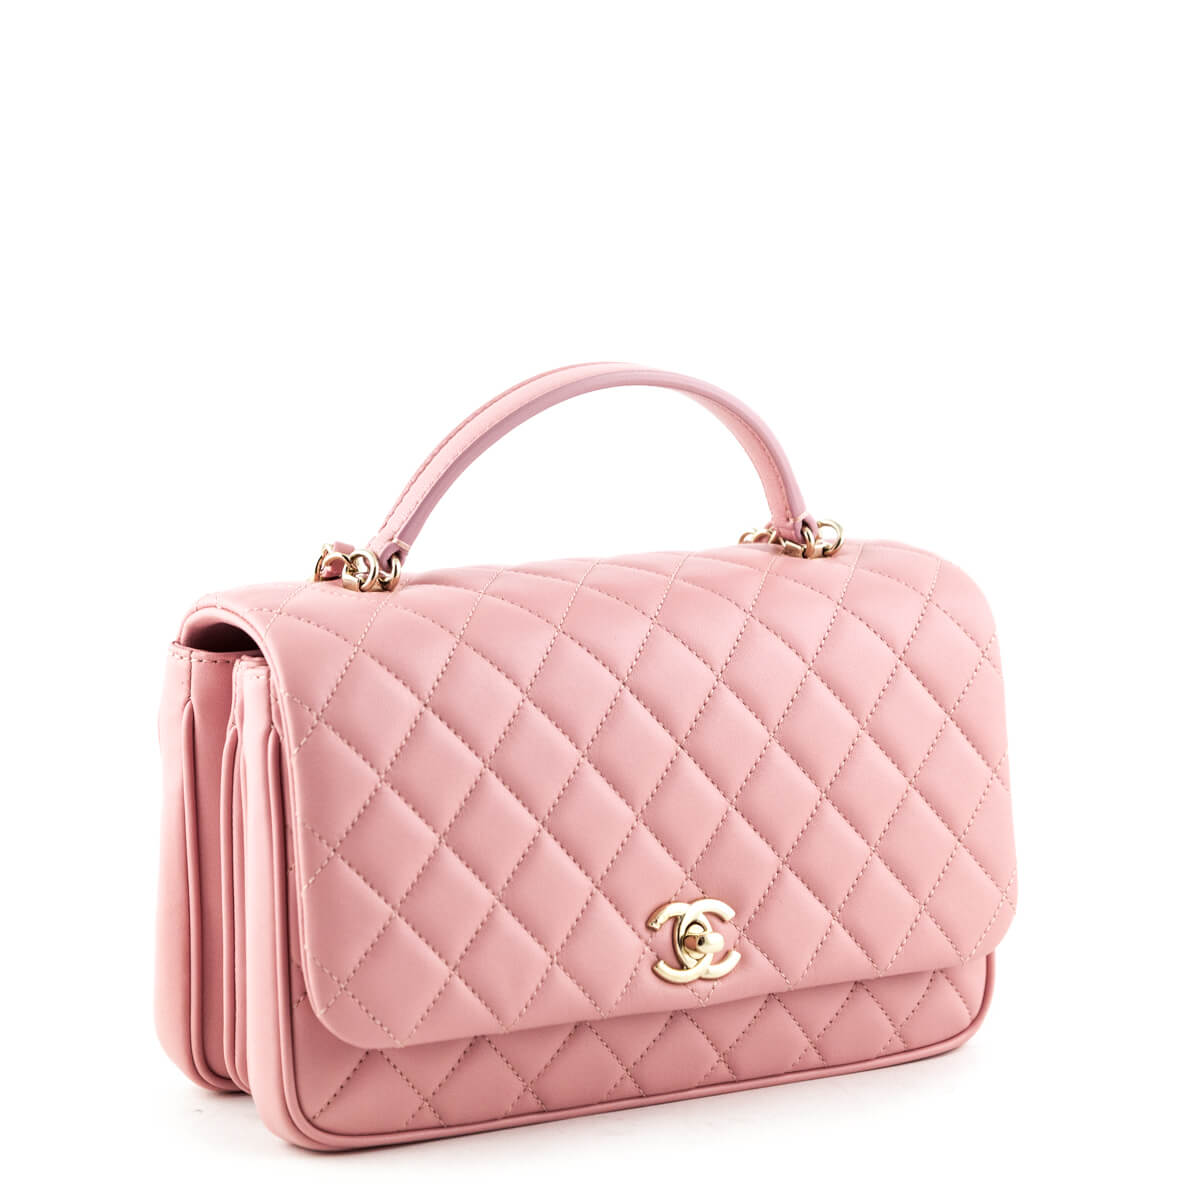 bd043b69d461 ... Chanel Pink Quilted Lambskin Top Handle Flap Bag - LOVE that BAG -  Preowned Authentic Designer ...